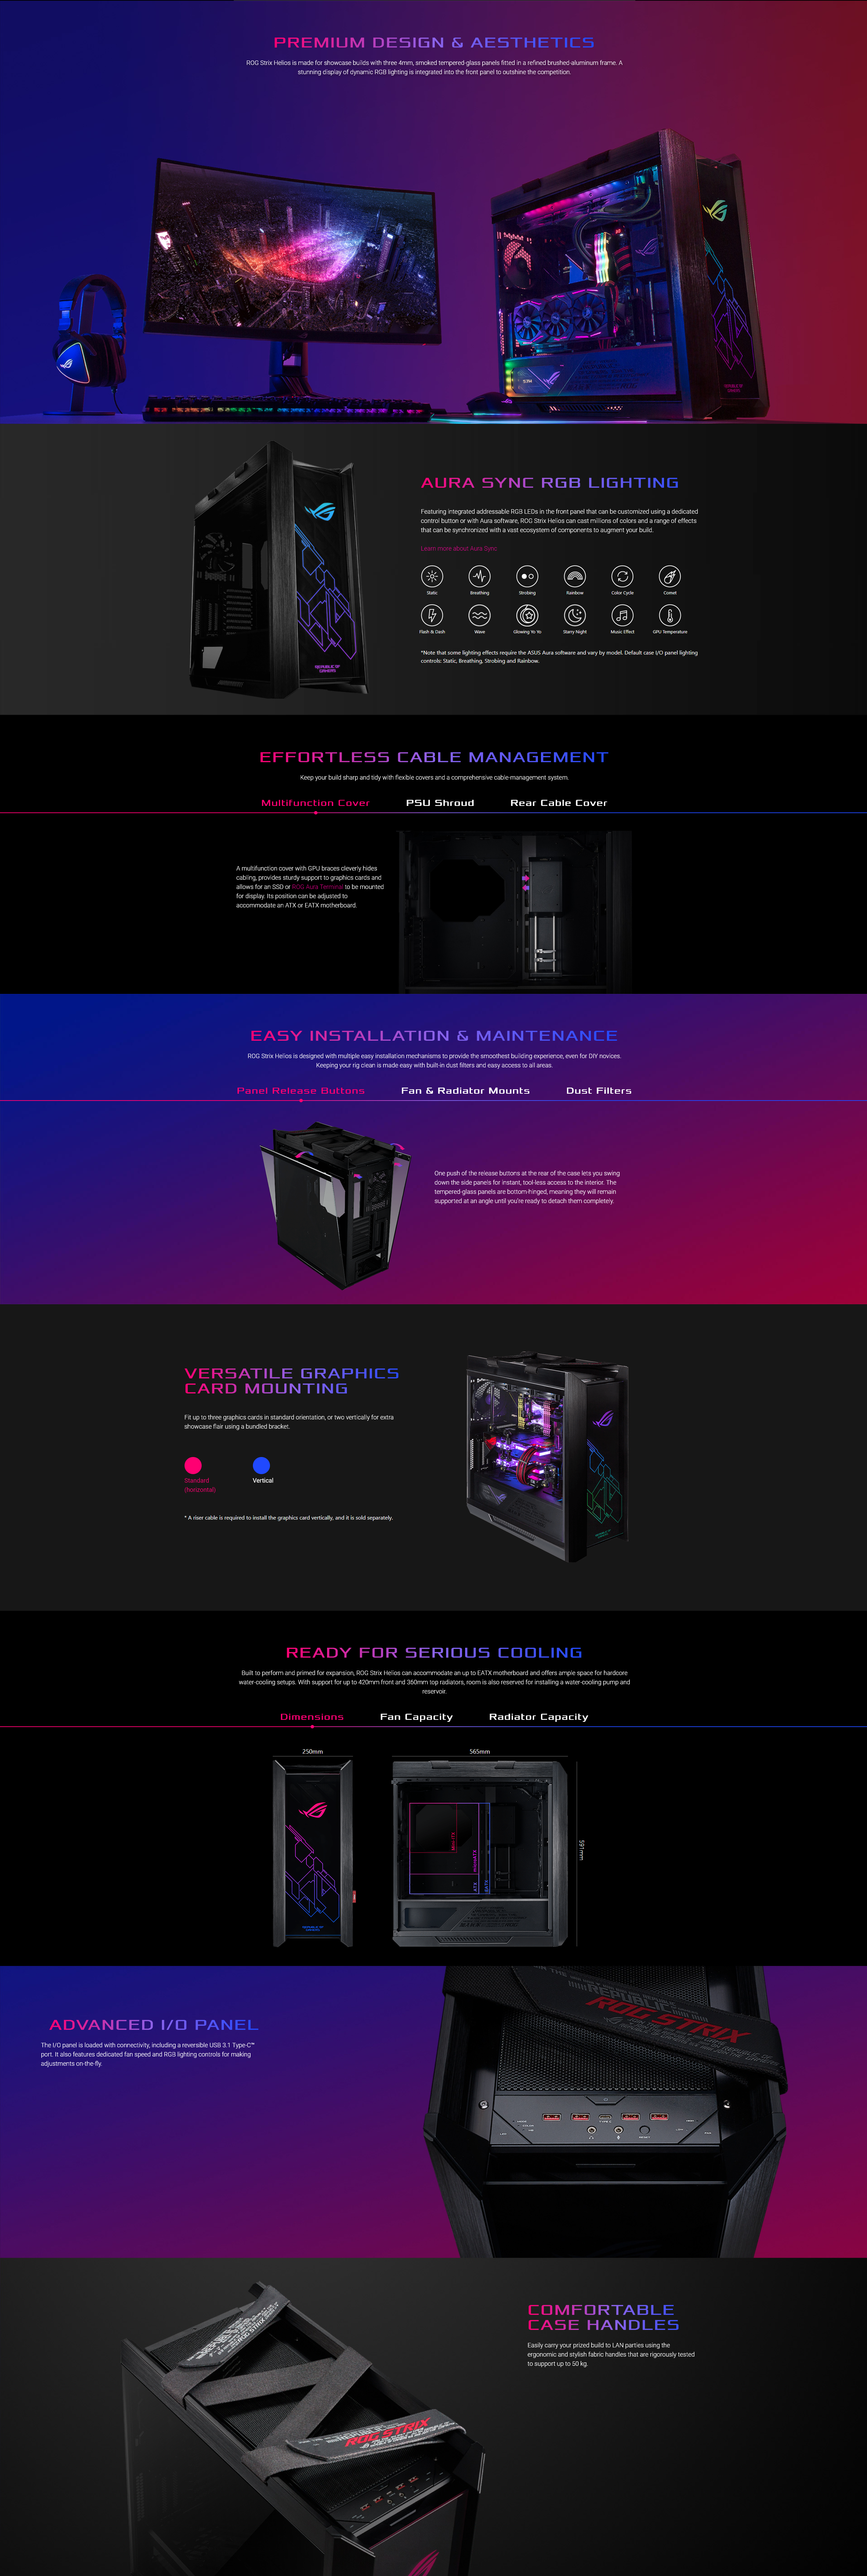 A large marketing image providing additional information about the product ASUS ROG Strix Helios Mid Tower Case w/Tempered Glass Side Panel - Additional alt info not provided